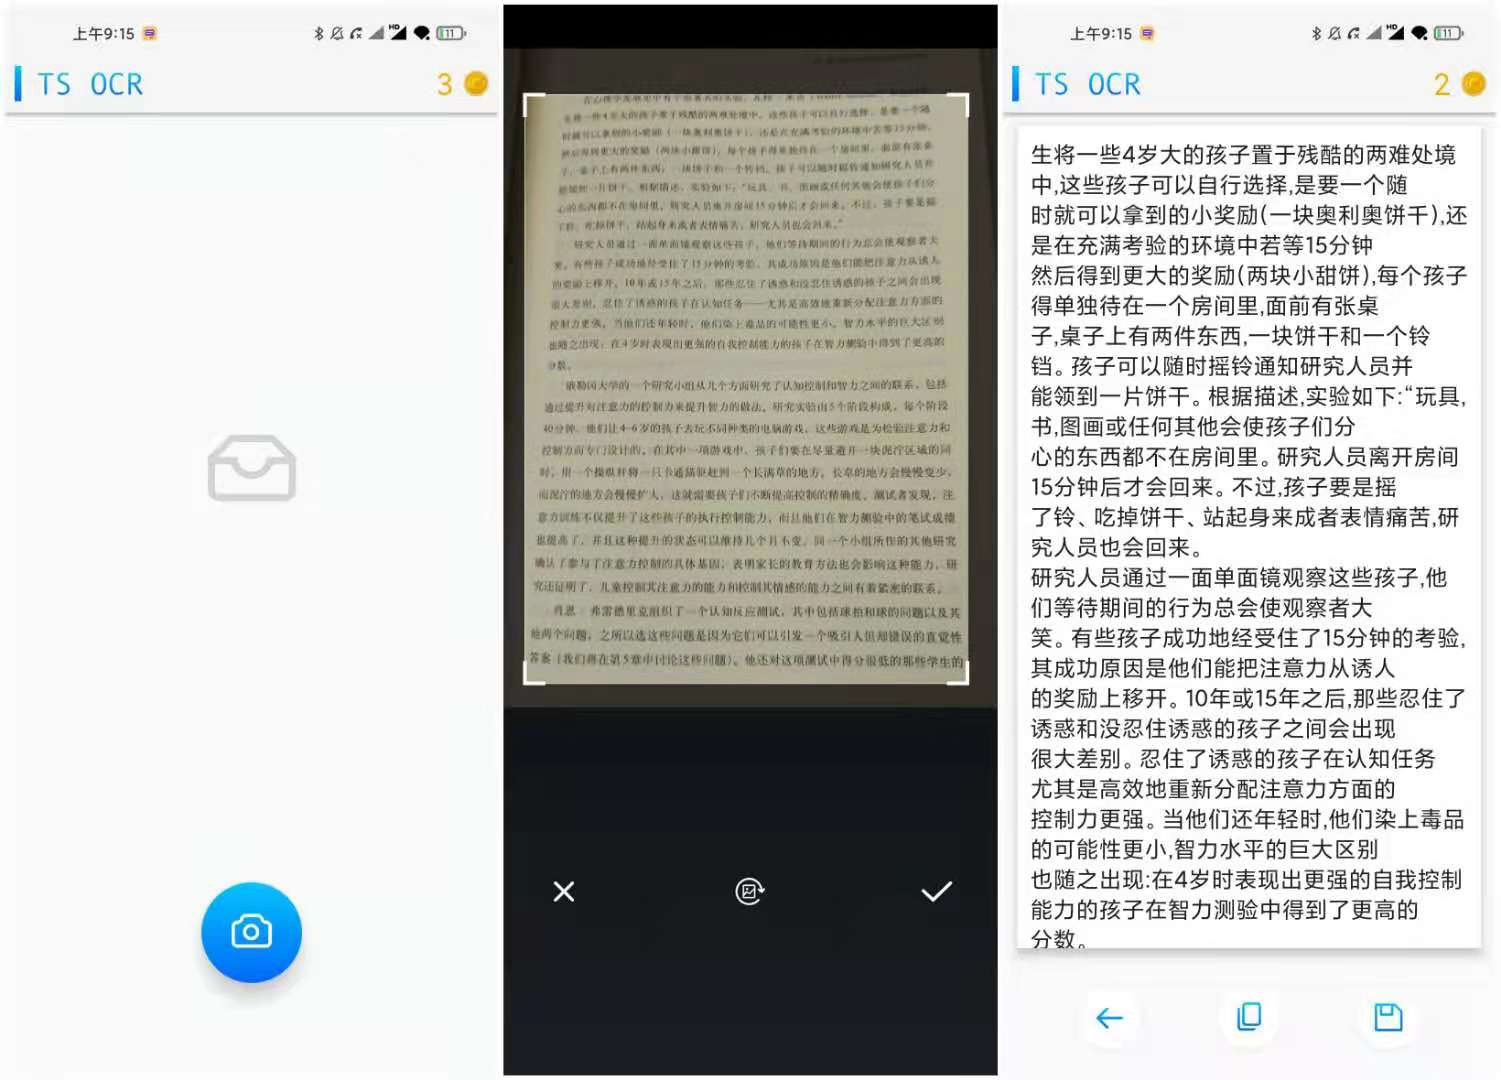 Text Scan OCR v1.3 免费OCR文字识